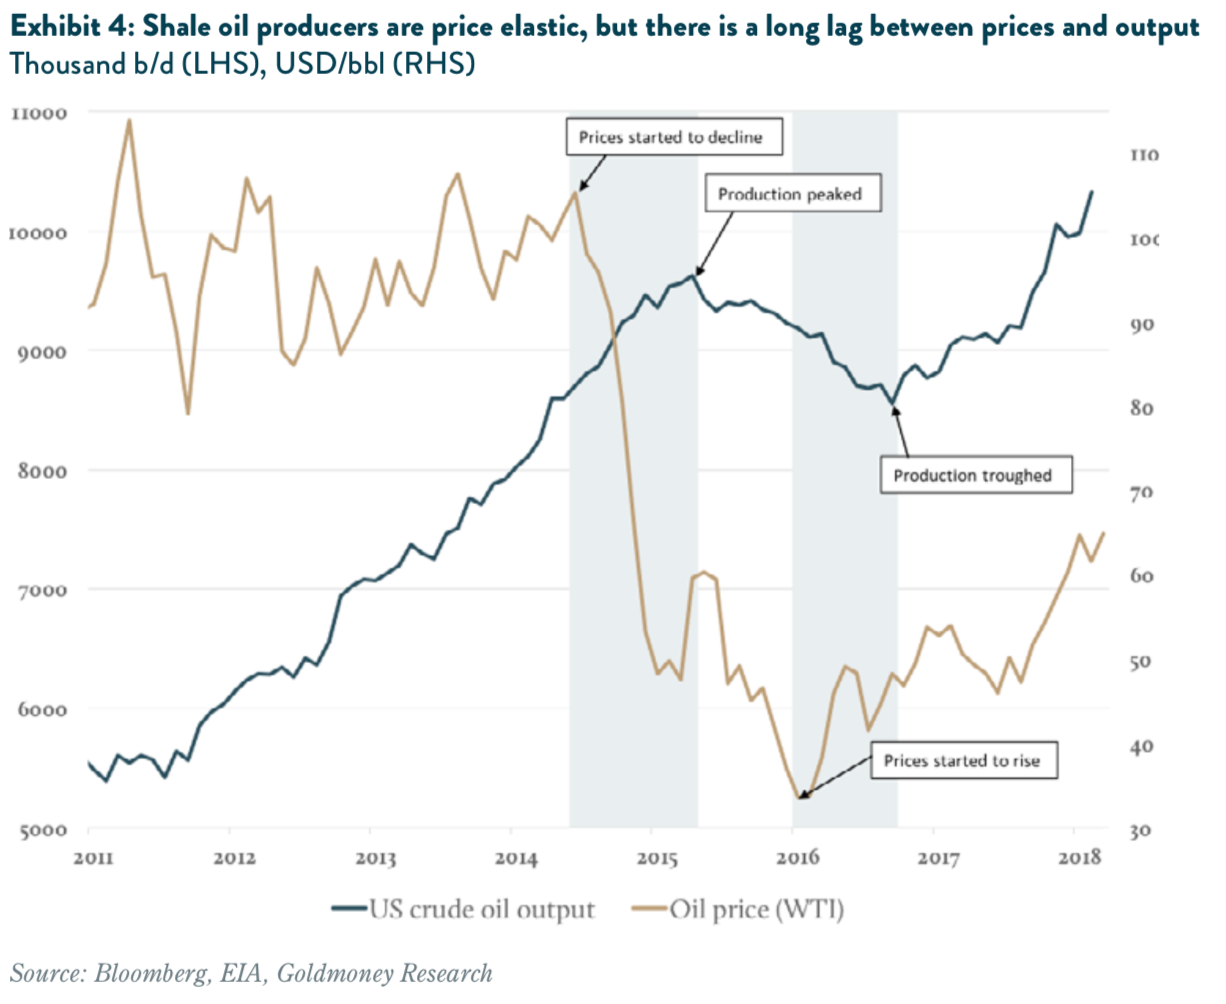 Shale oil producers and price elasticity